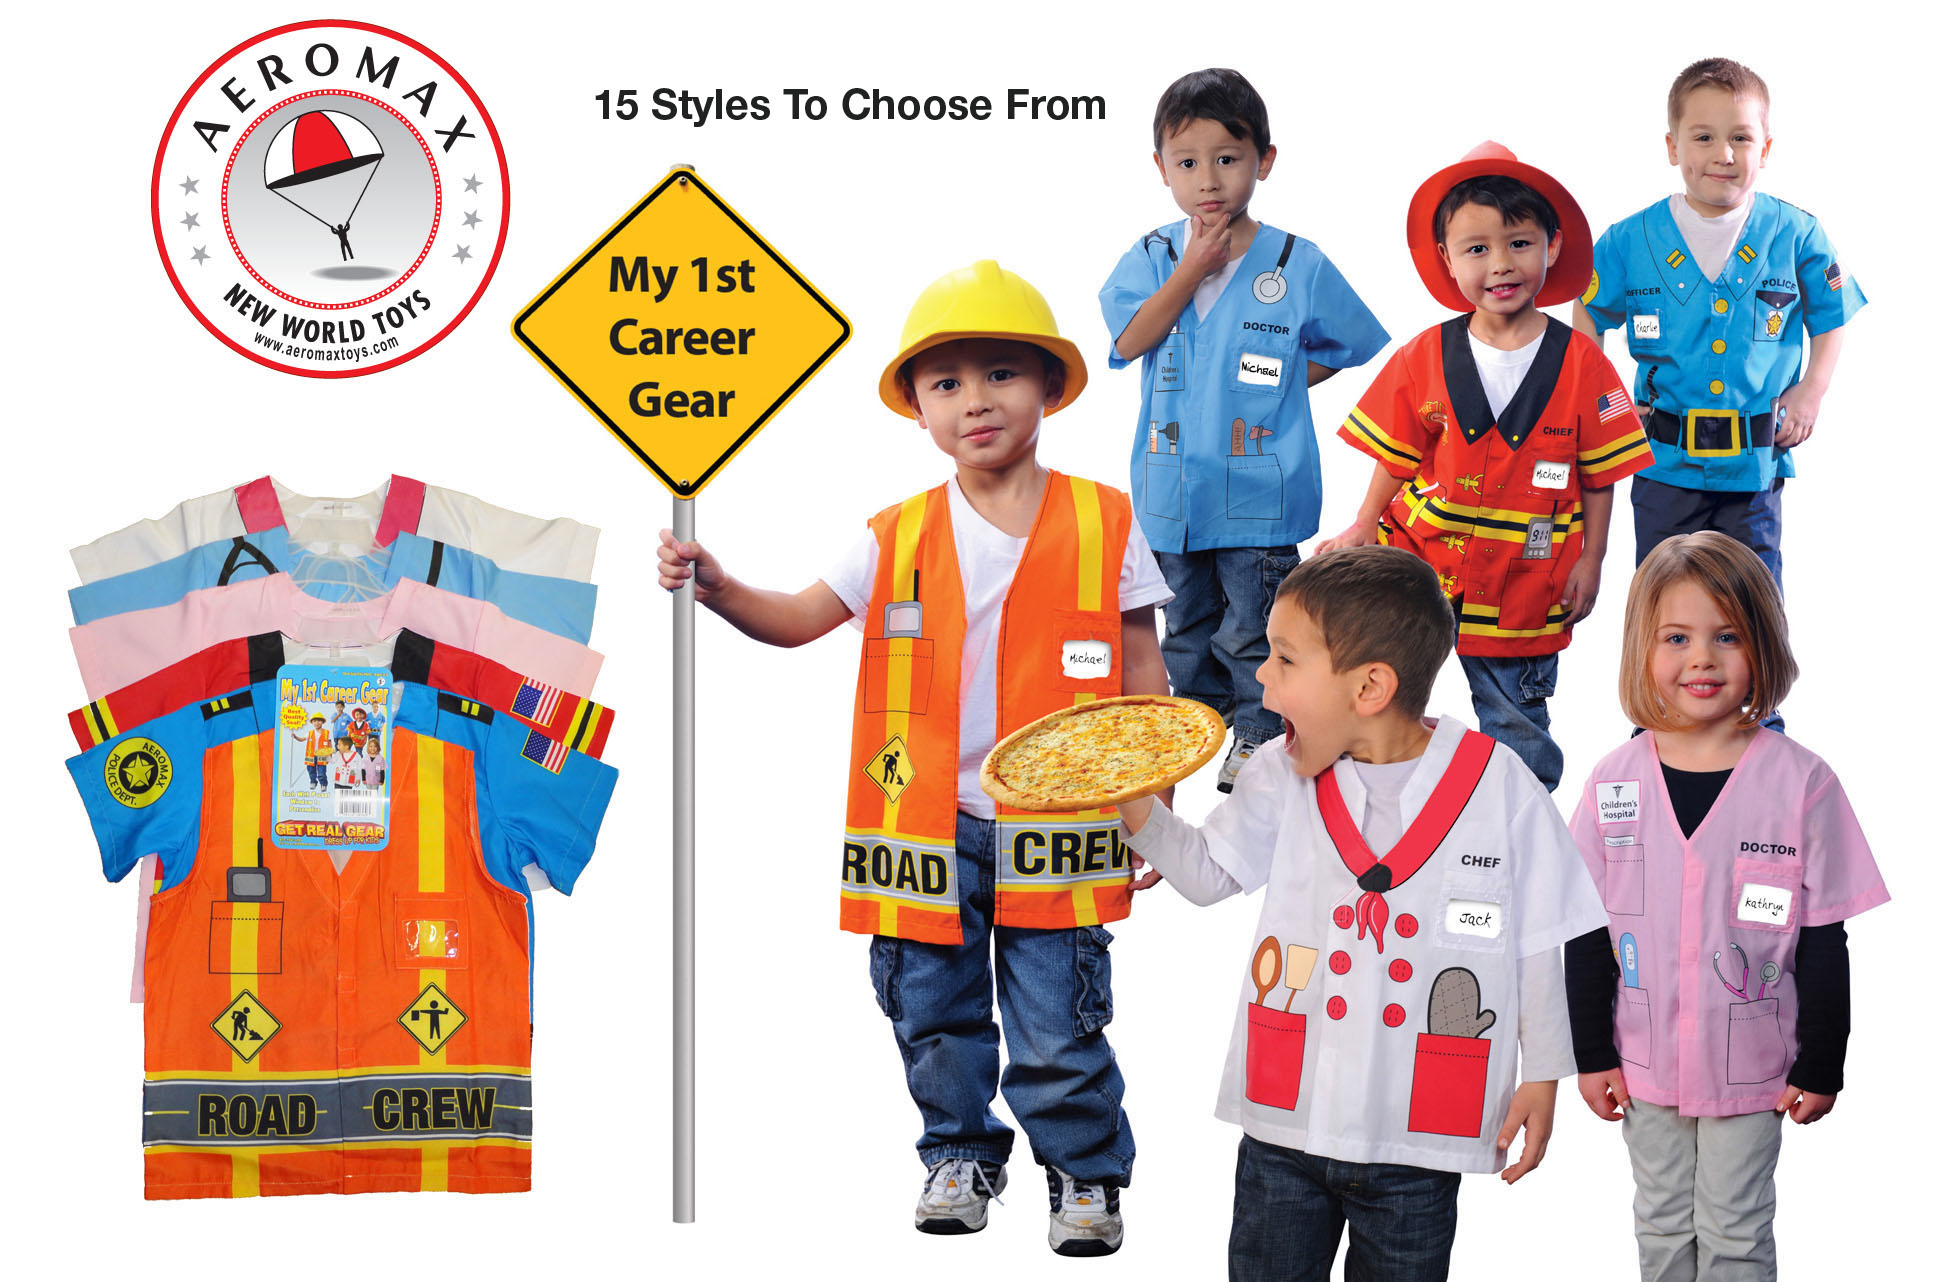 My 1st Career Gear from Aeromax. 15 different styles to choose from. Ages 3-6 by Aeromax, Inc.